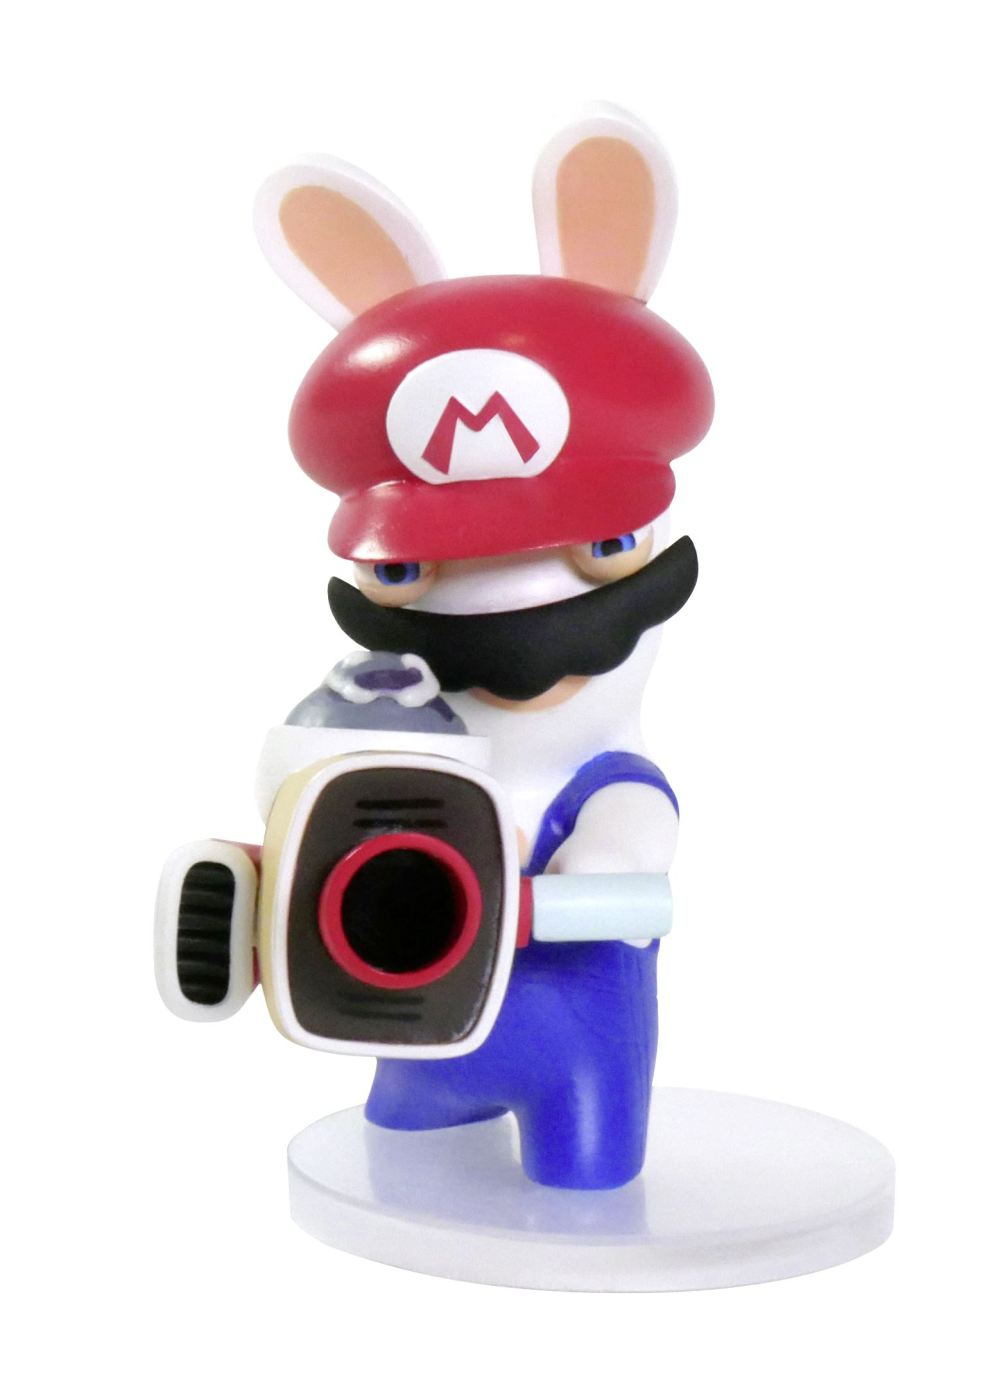 rabbid-mario-ubicollectibles-figure-photo-1